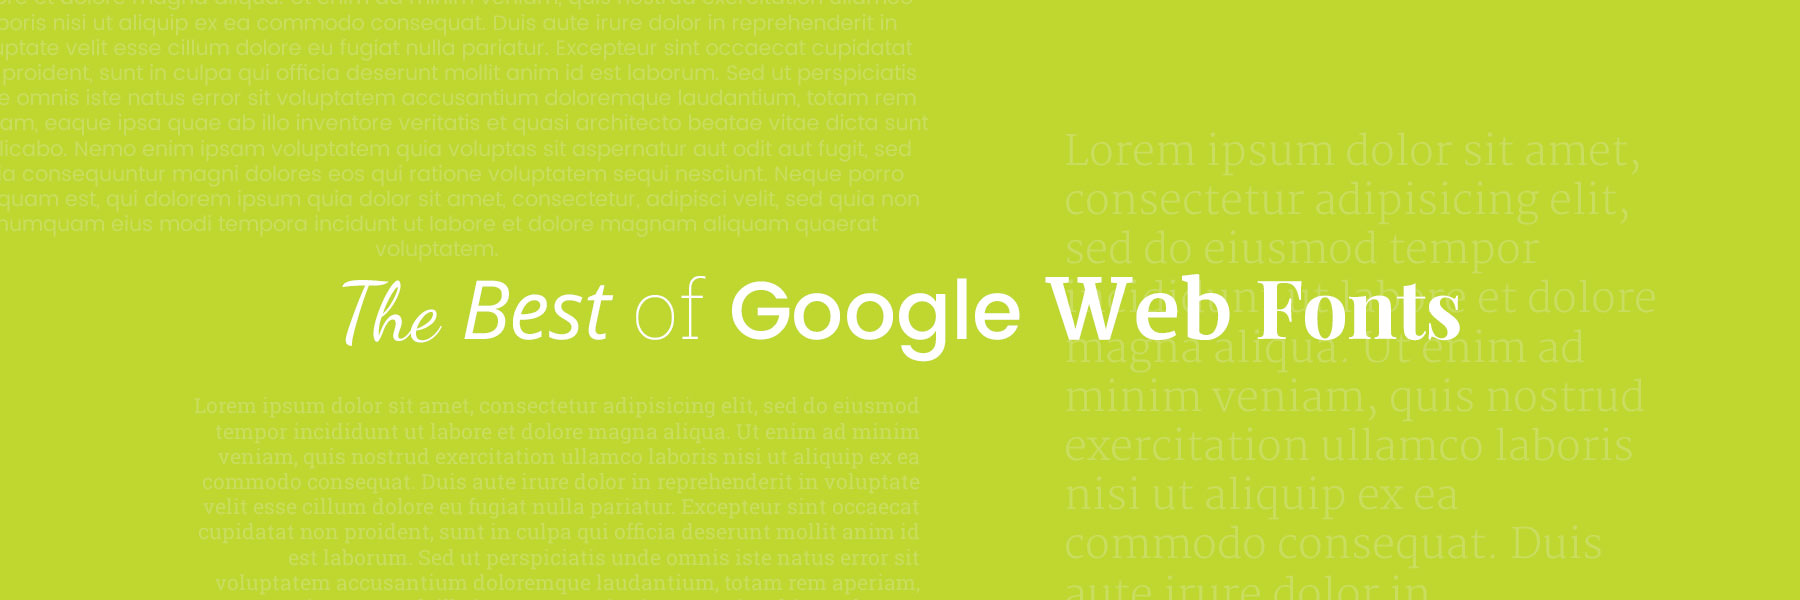 The Best of Google Web Fonts